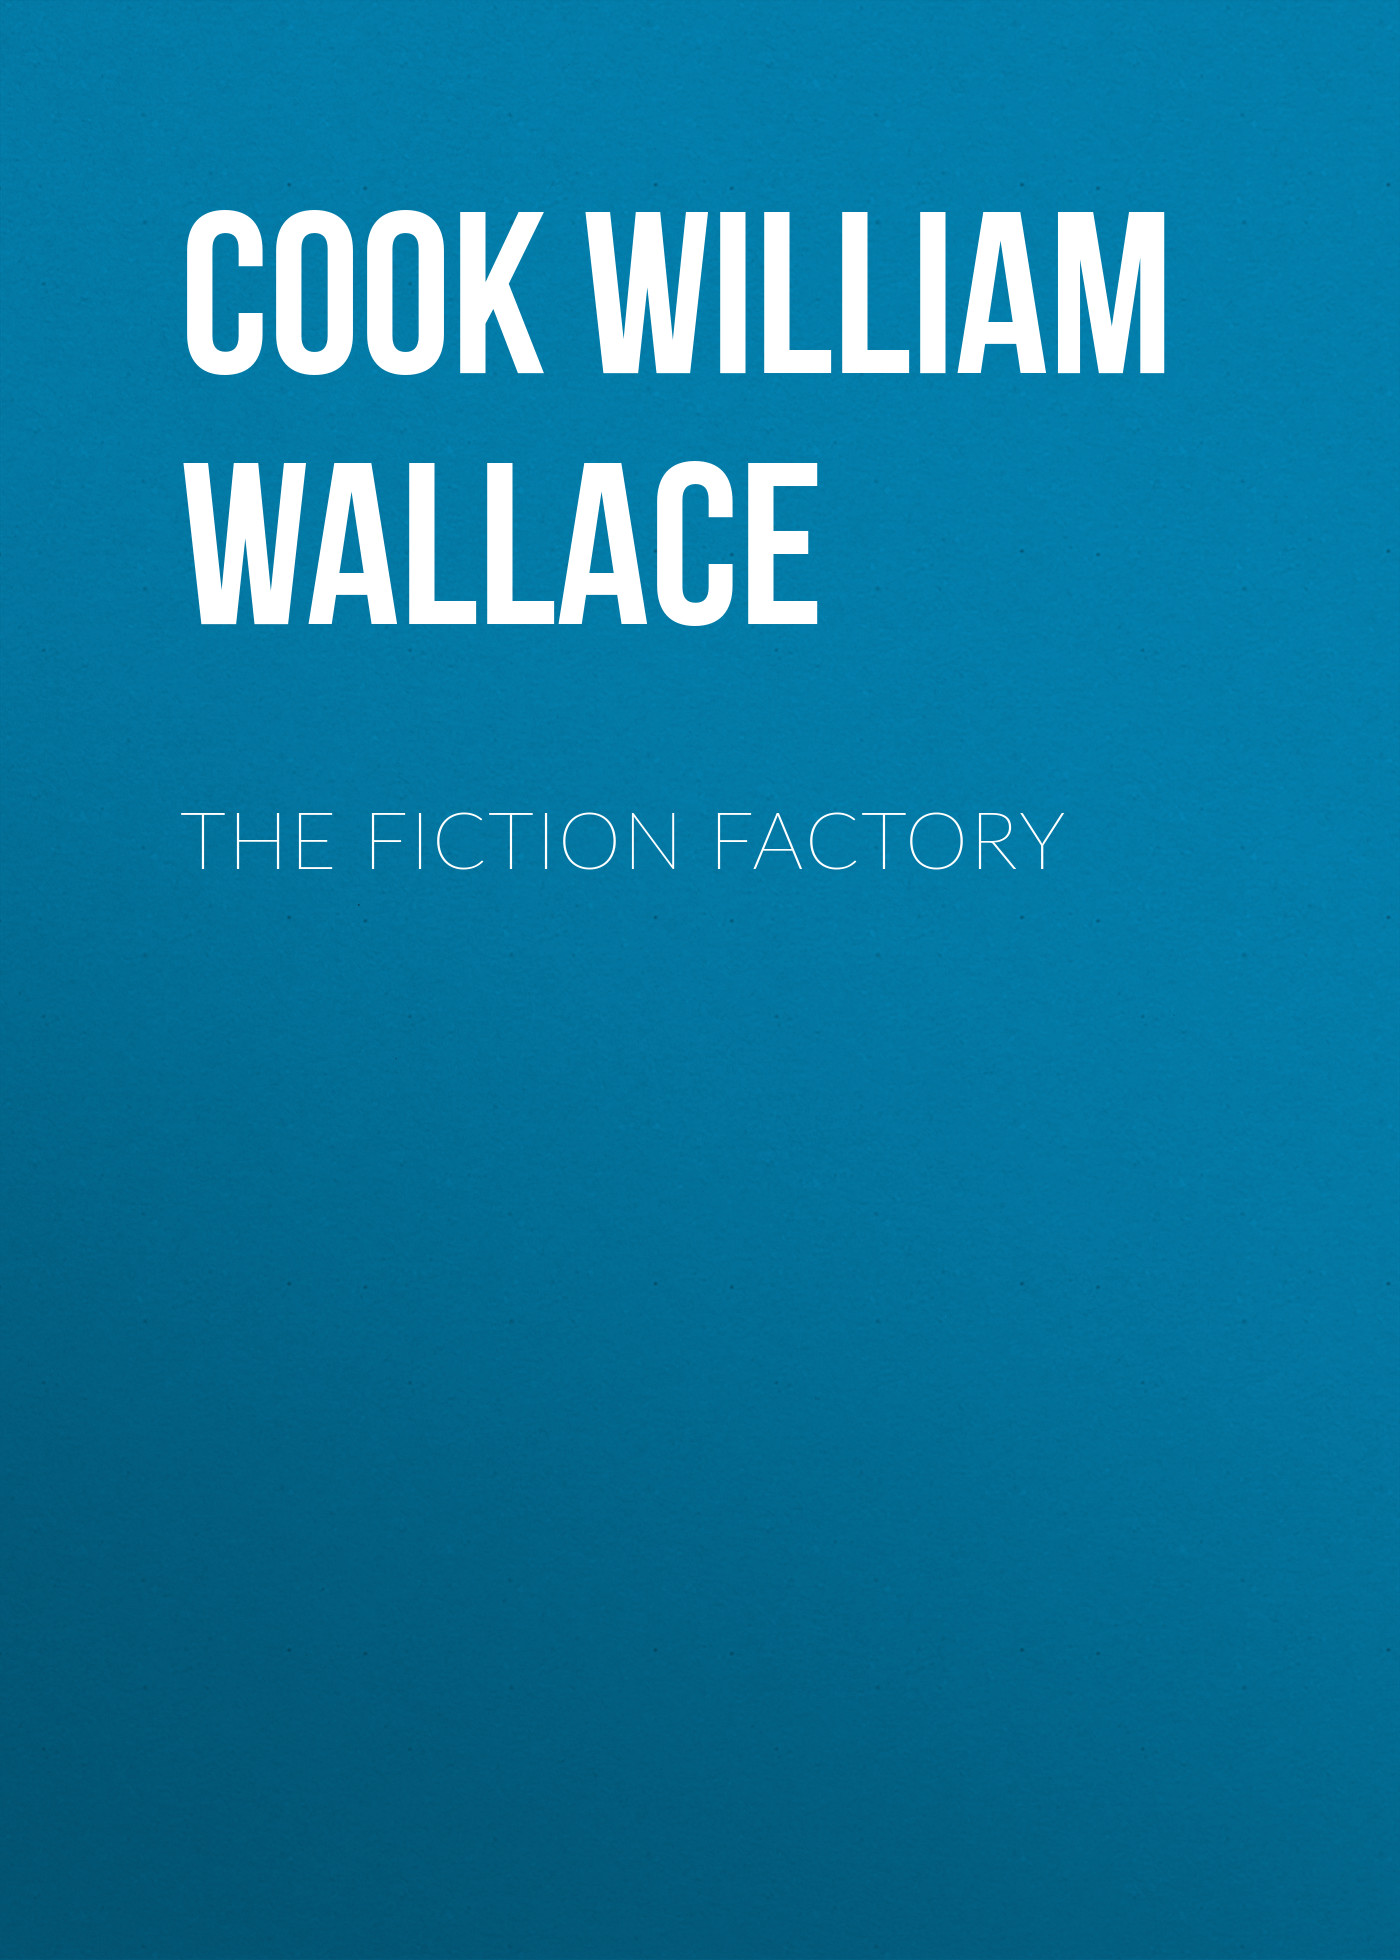 Cook William Wallace The Fiction Factory wallace